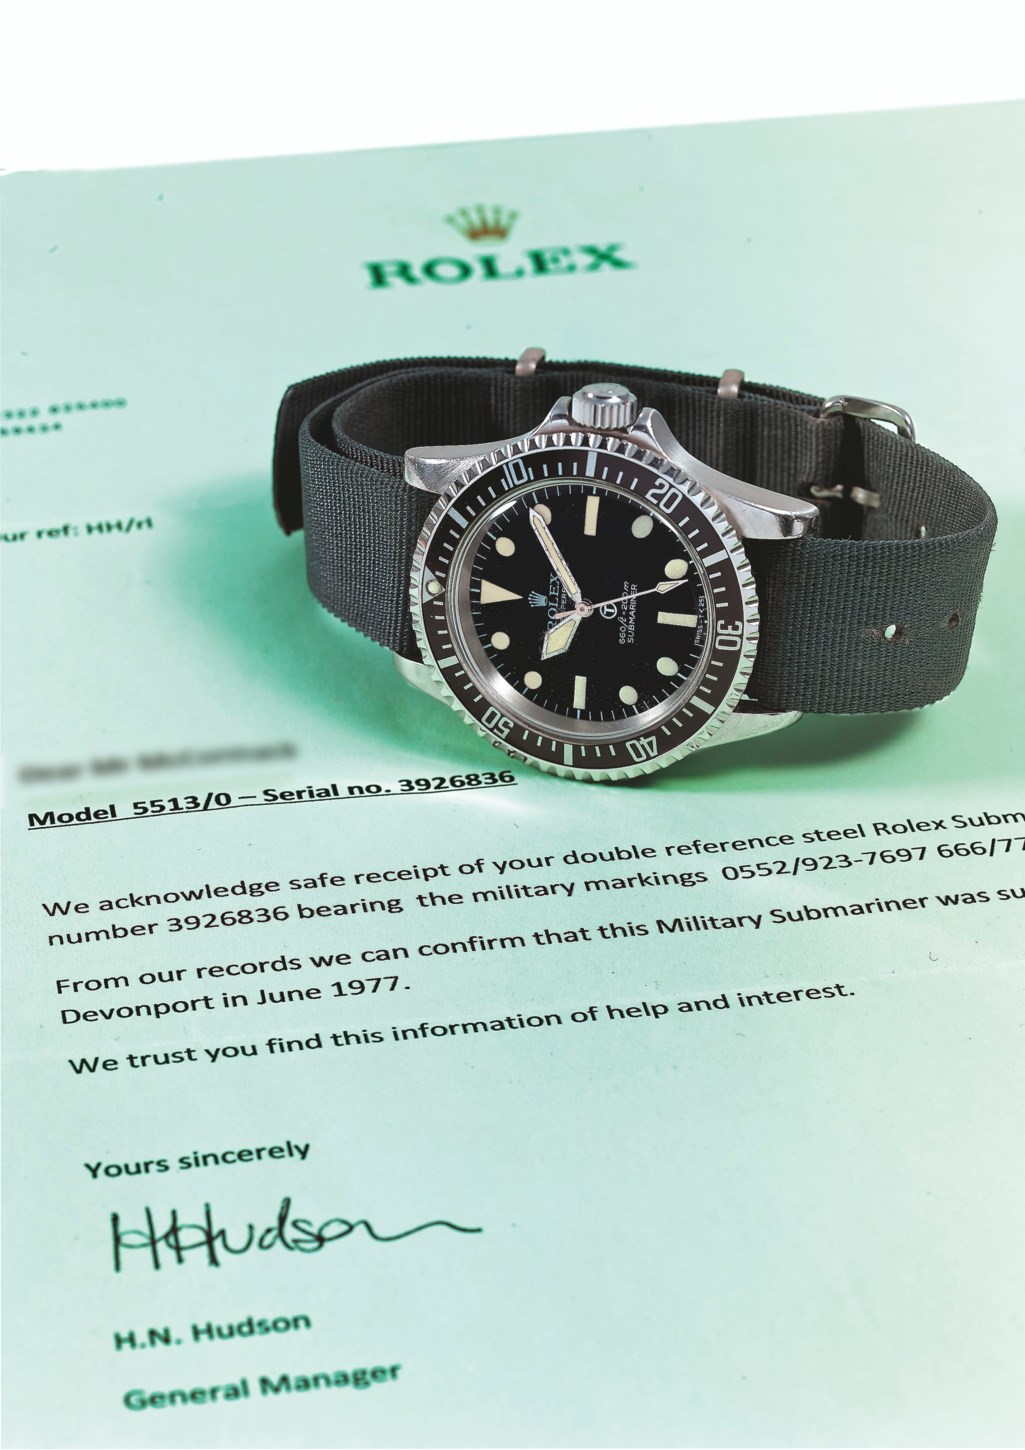 """ROLEX, STEEL SUBMARINER """"MILSUB"""", REF. 5513/17- MADE FOR THE BRISTISH ROYAL NAVY"""